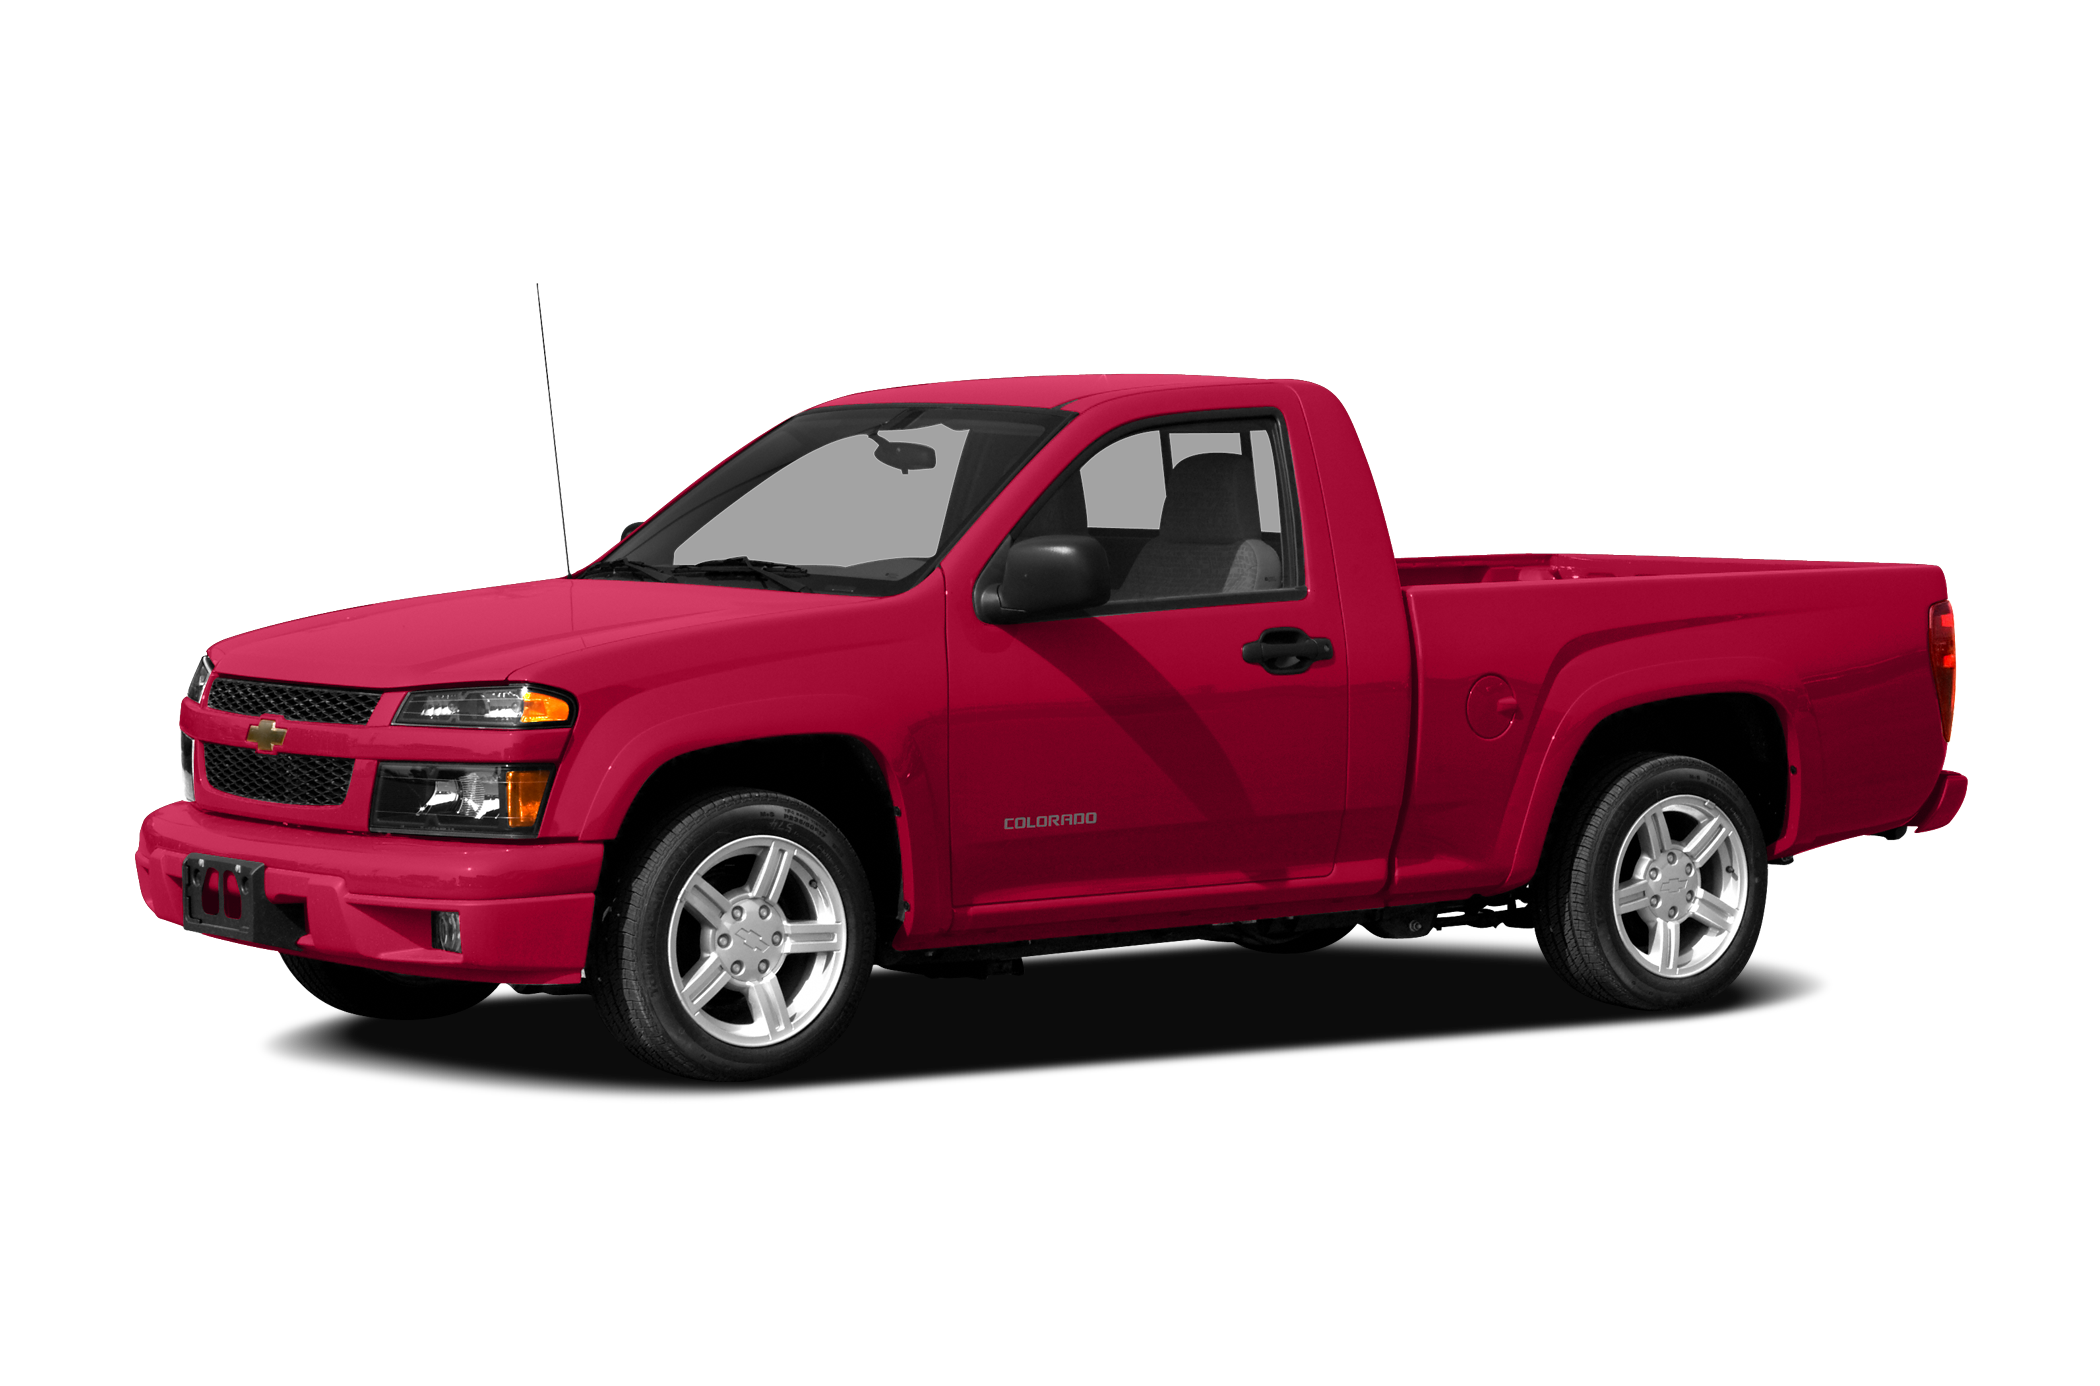 Available in 14 styles: 2008 Chevrolet Colorado 4x2 Regular Cab 6' box